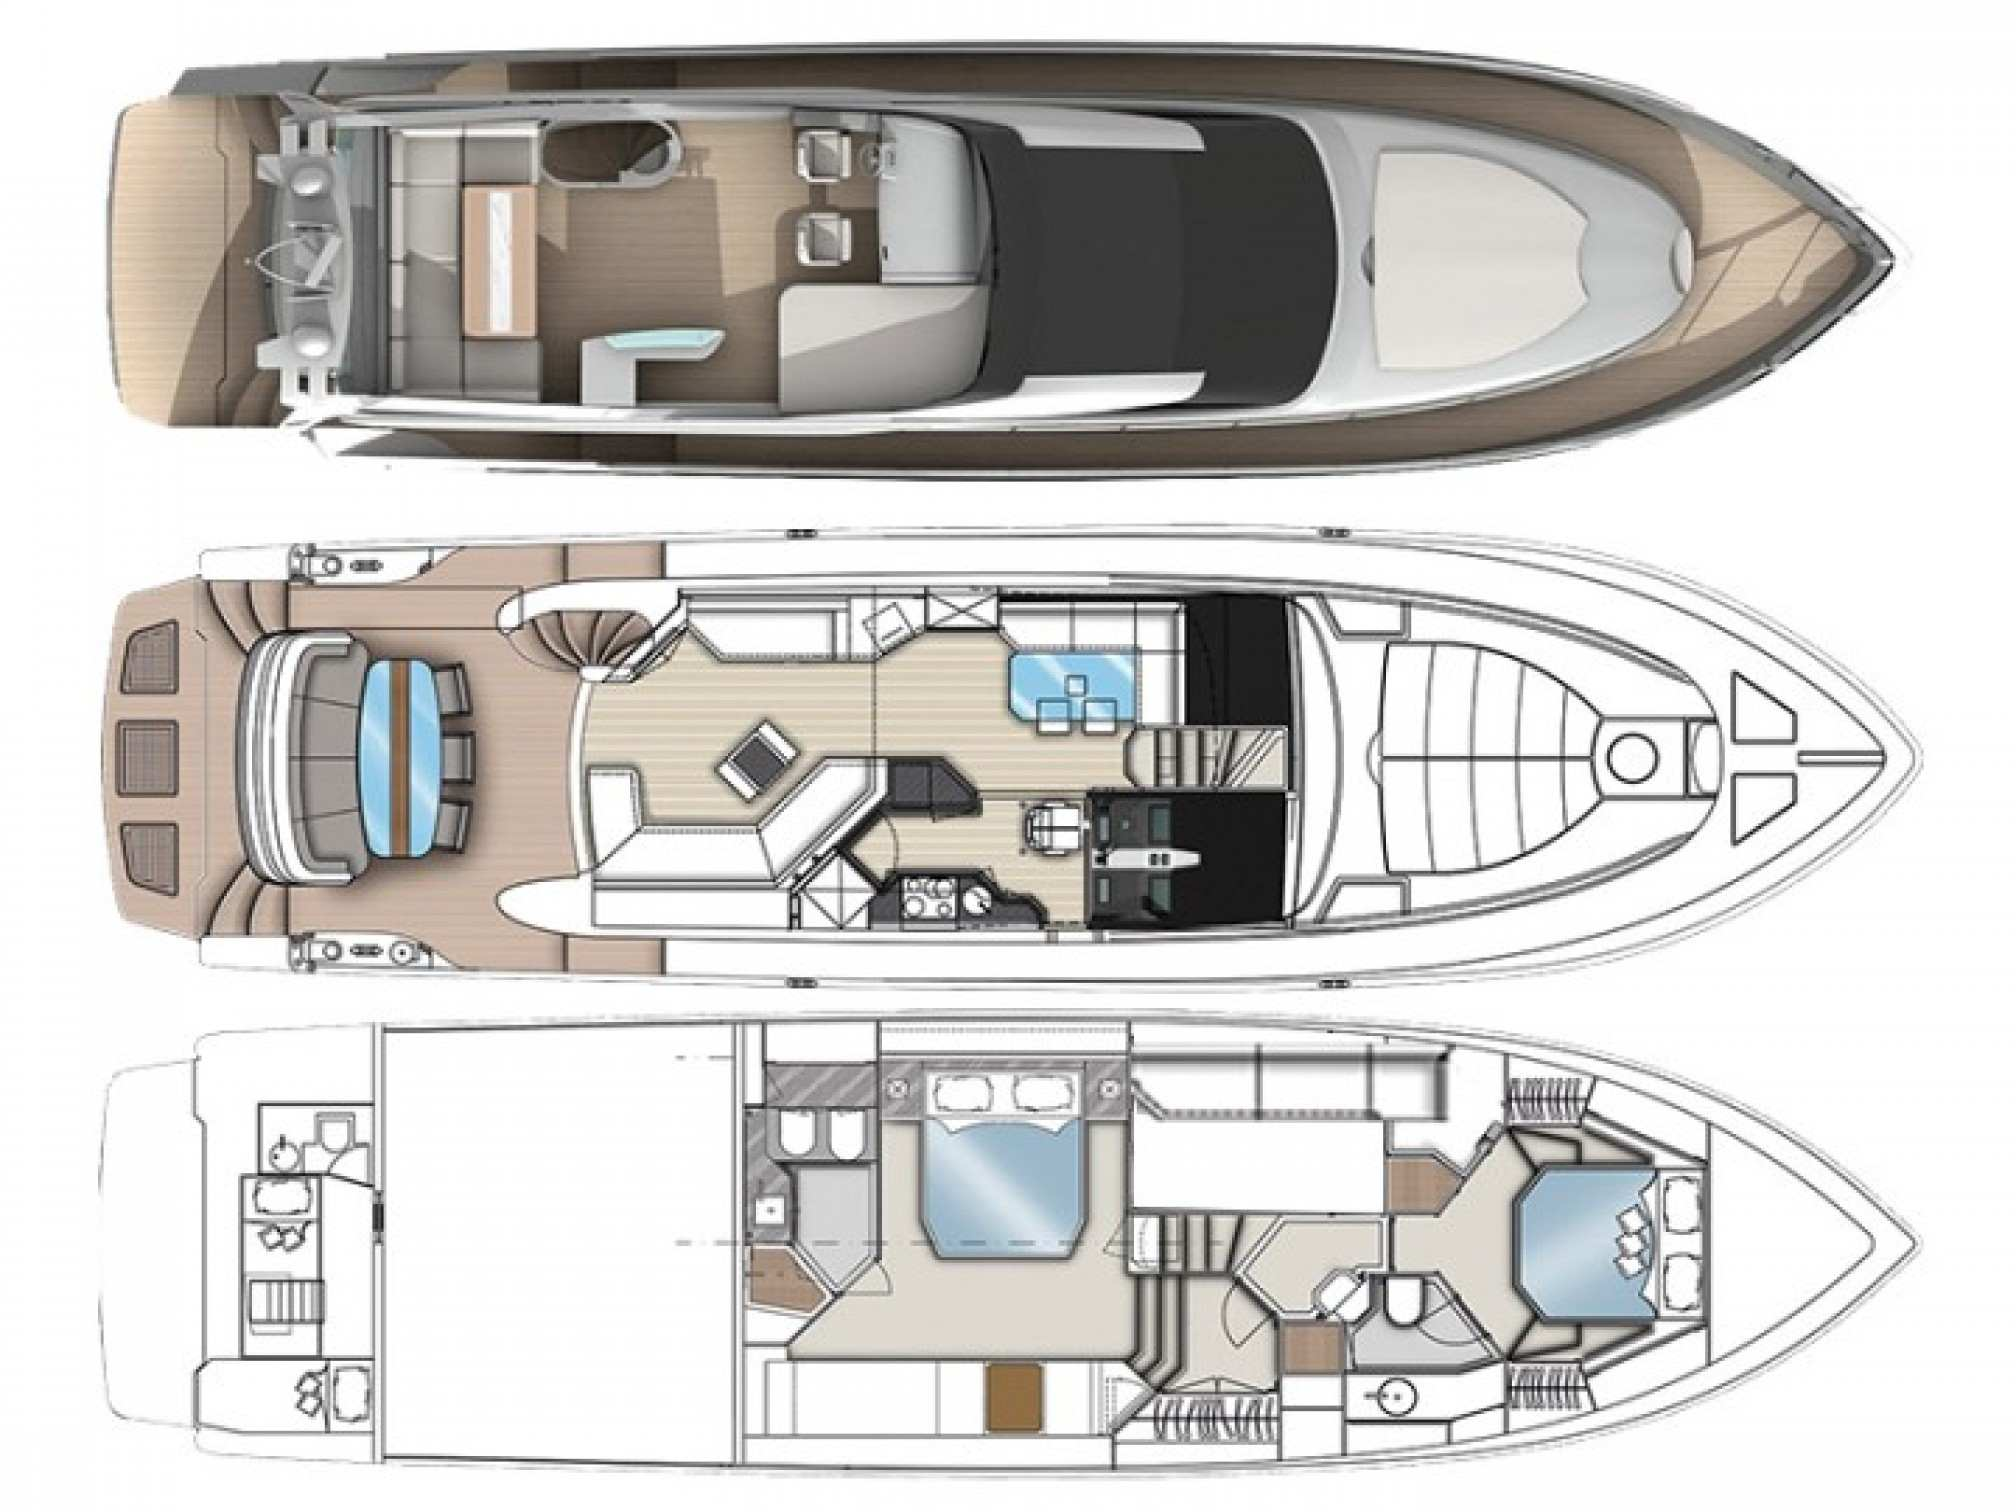 Dominator 640S yacht charter layout